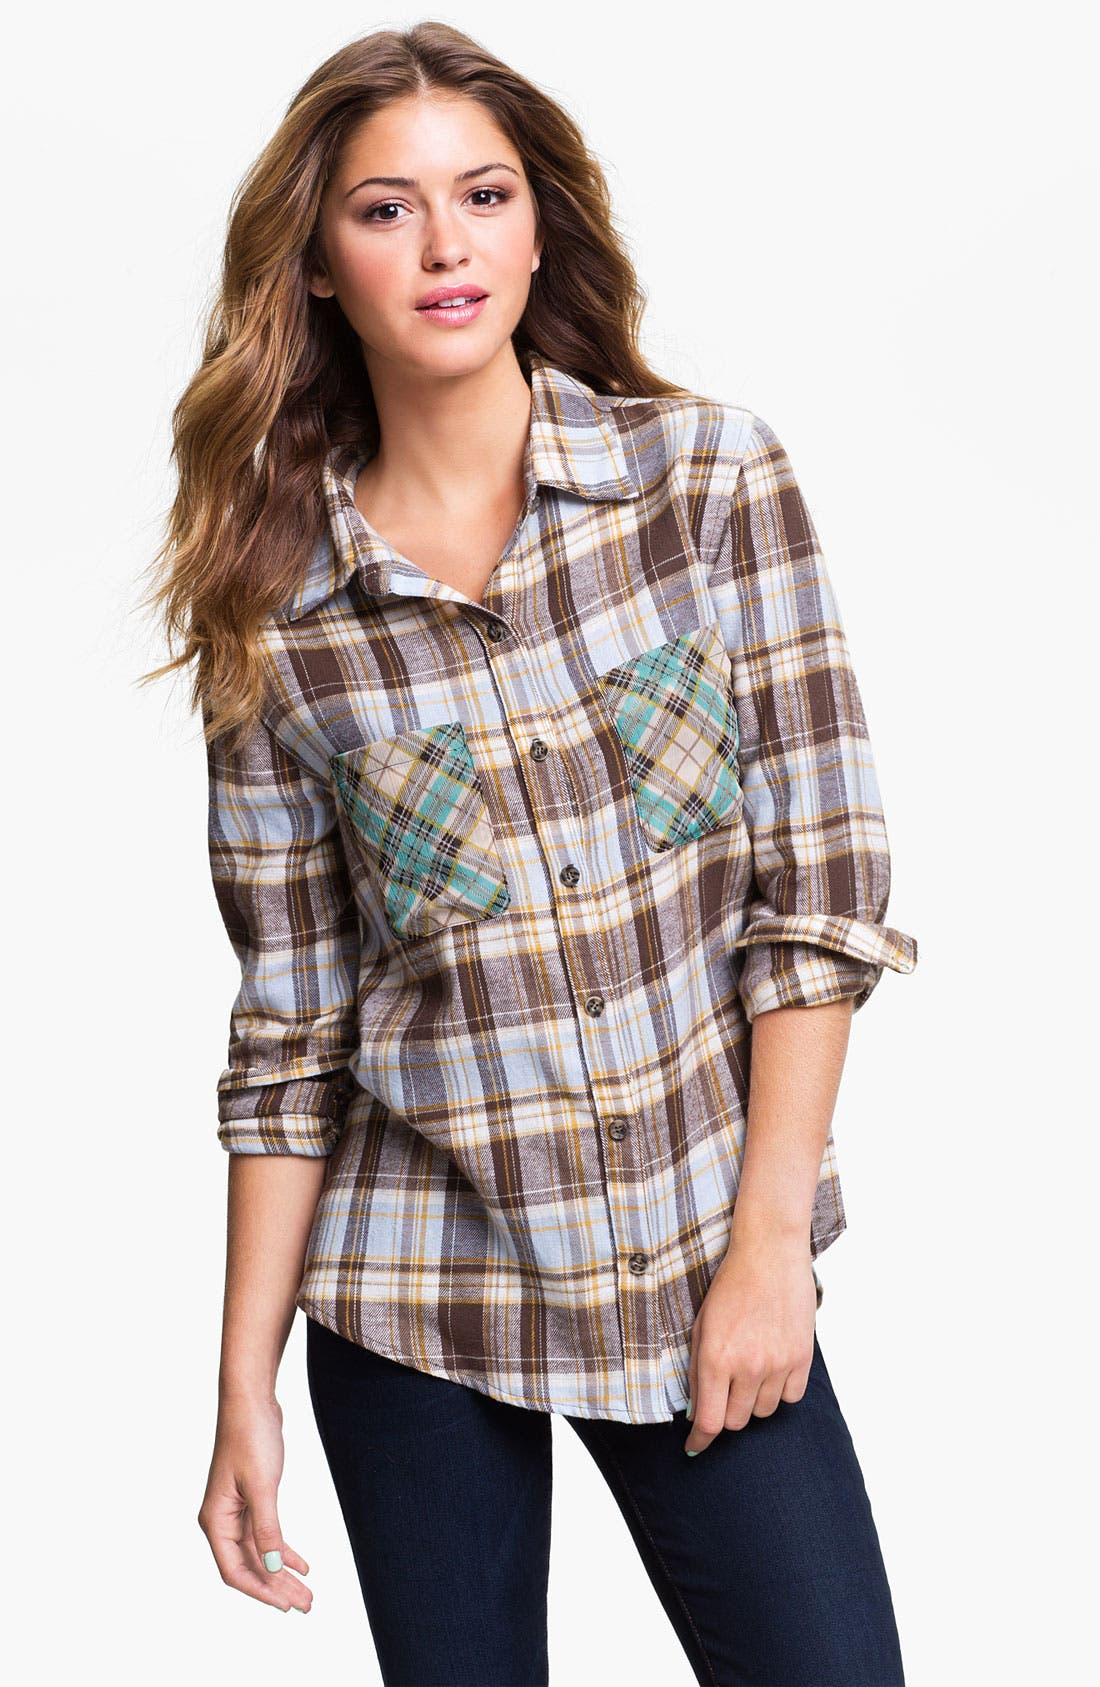 Alternate Image 1 Selected - Mimi Chica Mixed Plaid Cutout Back Shirt (Juniors)